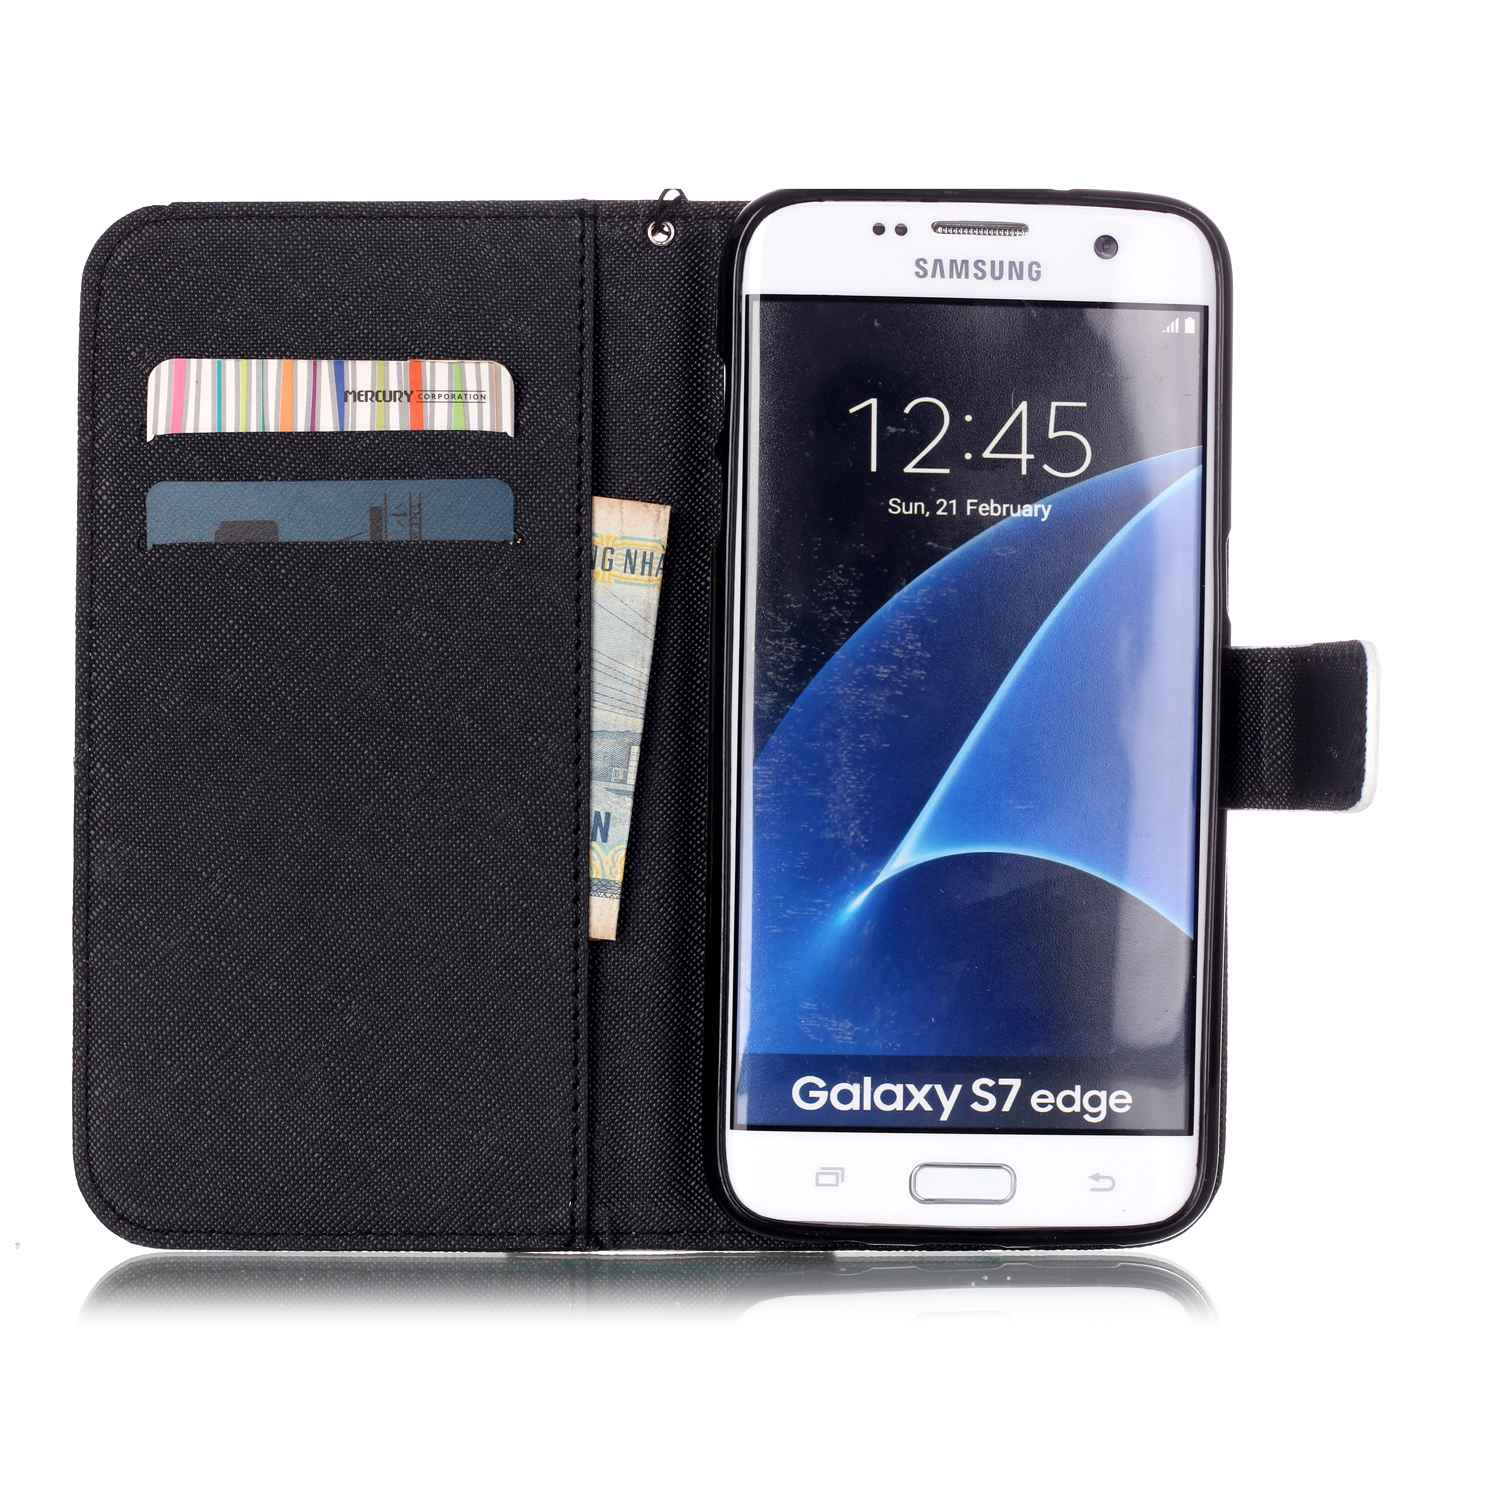 Phone Leather Cover for Samsung S 7 edge 7edge G935F SM G935F Flip Case for Samsung Galaxy S7 Edge s7edge G935FD SM G935FD Bags in Flip Cases from